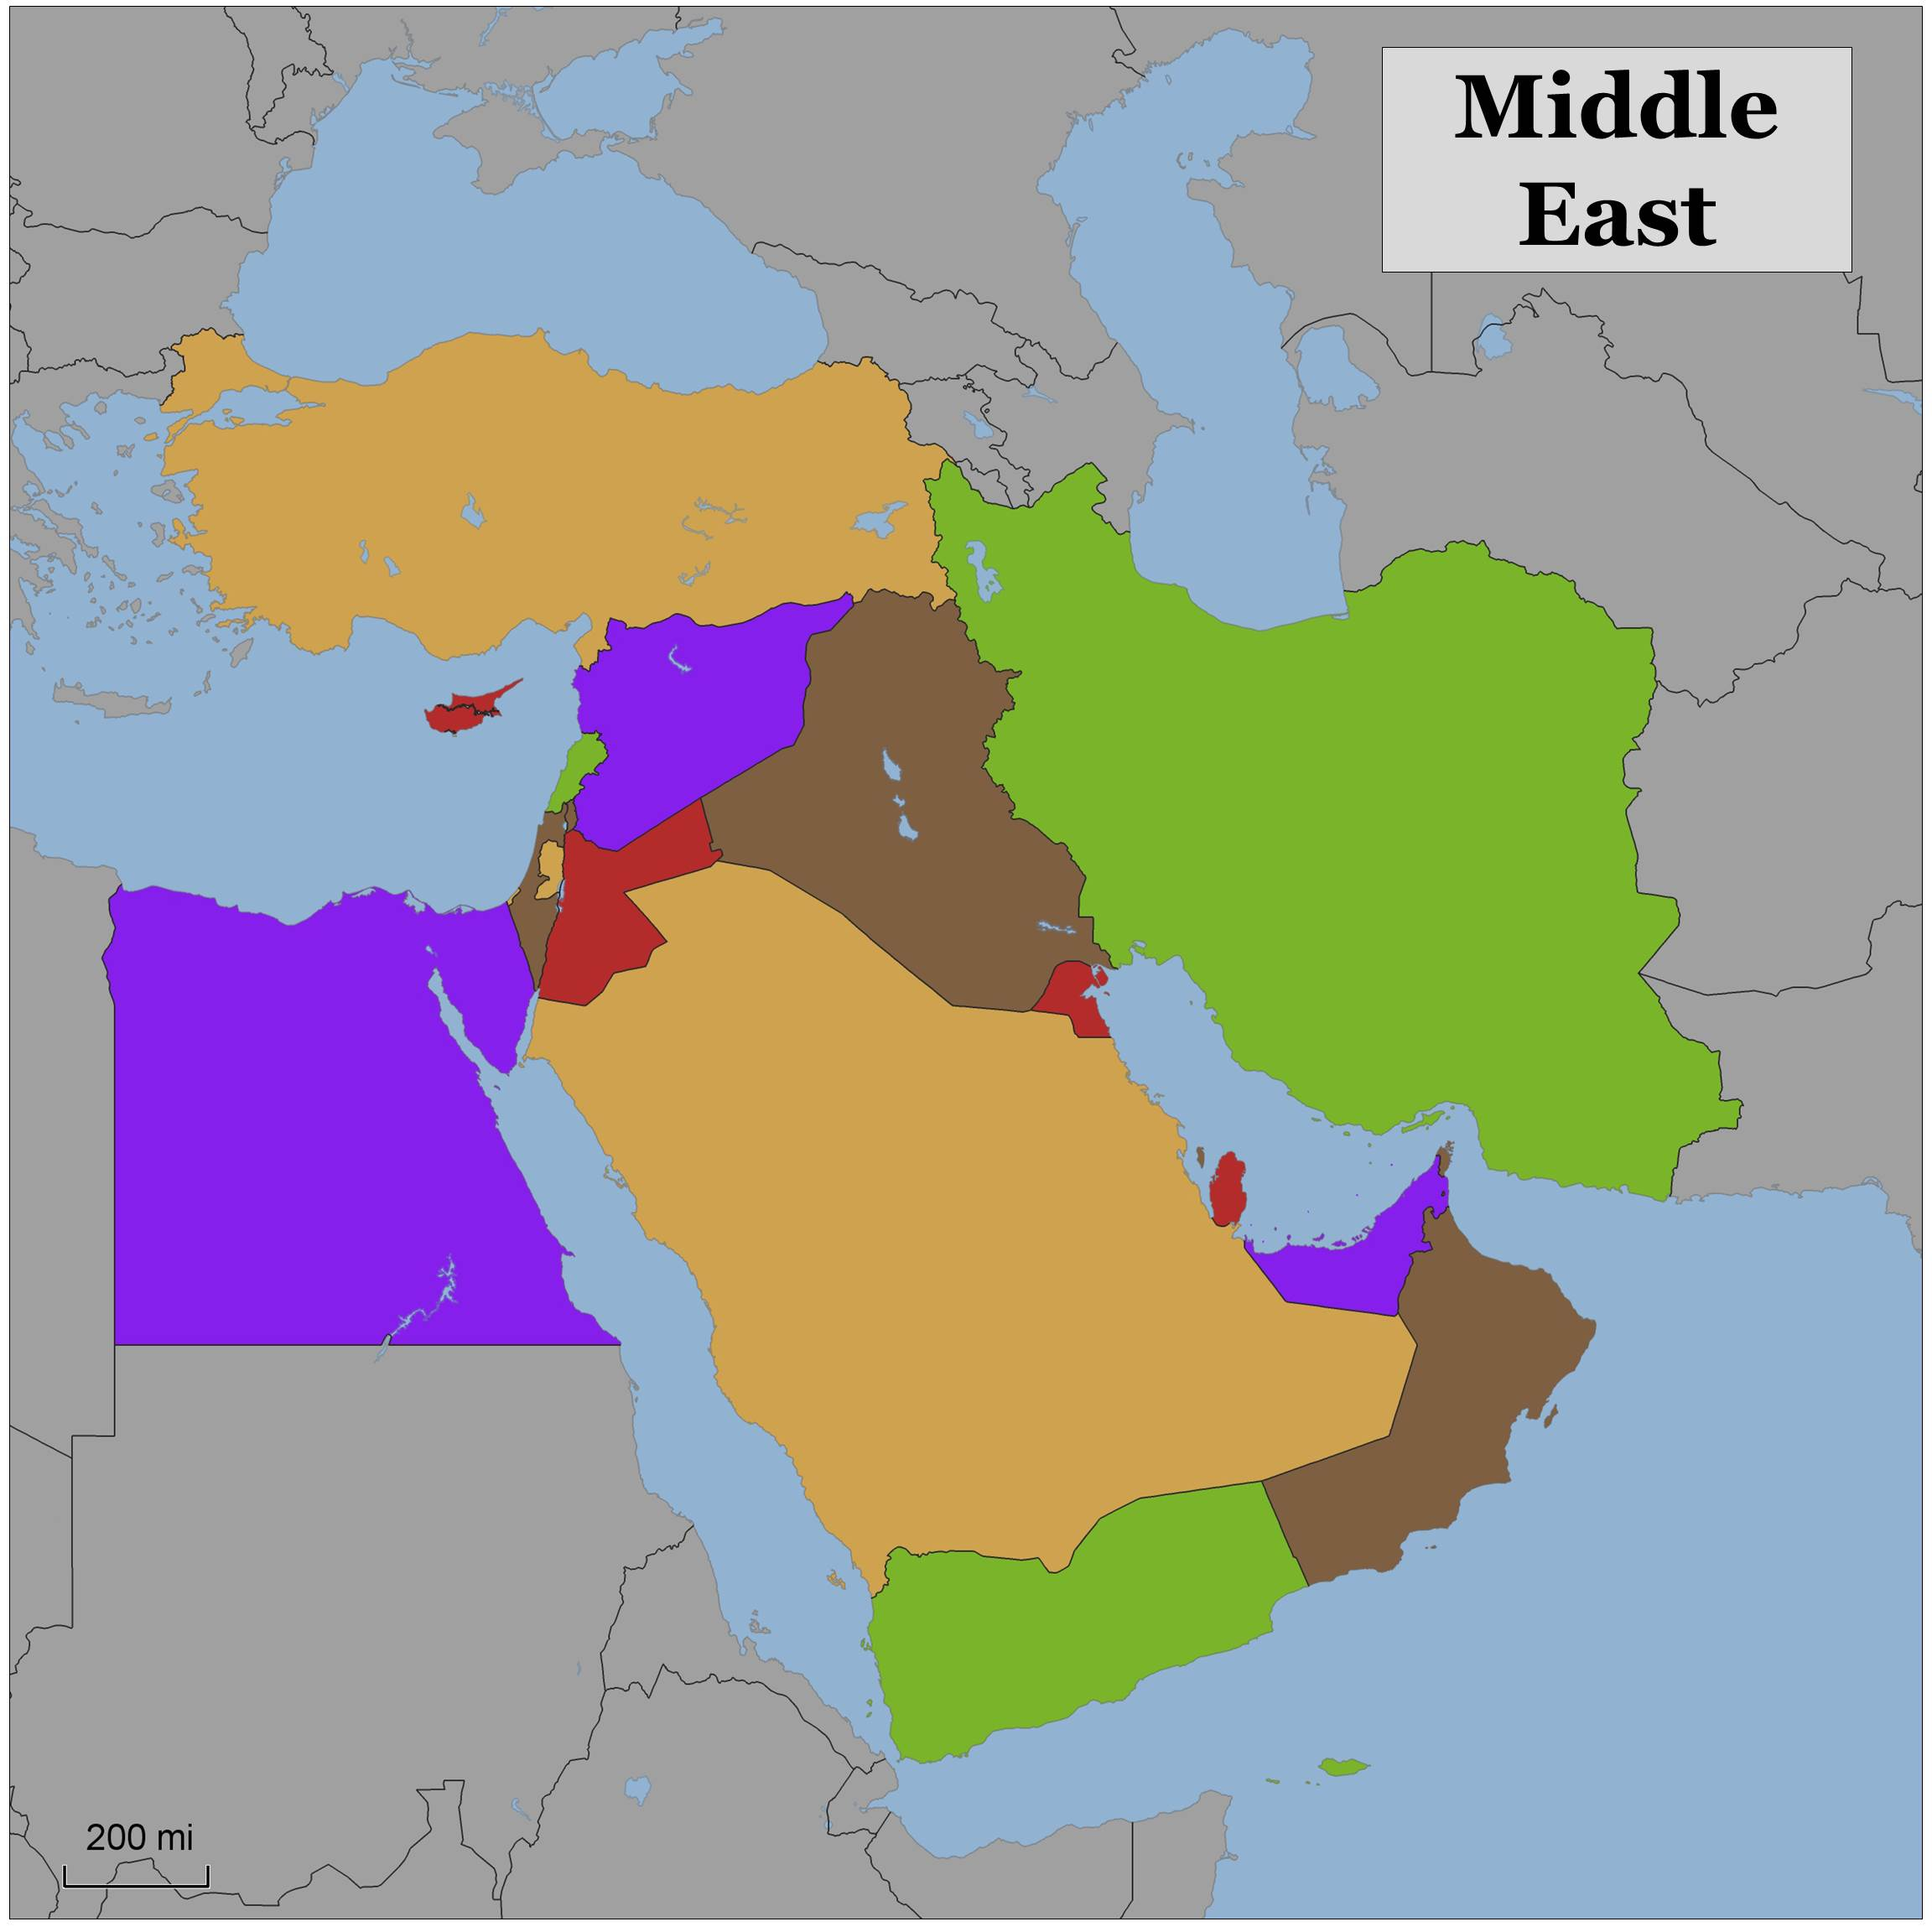 Blank color map of the Middle East